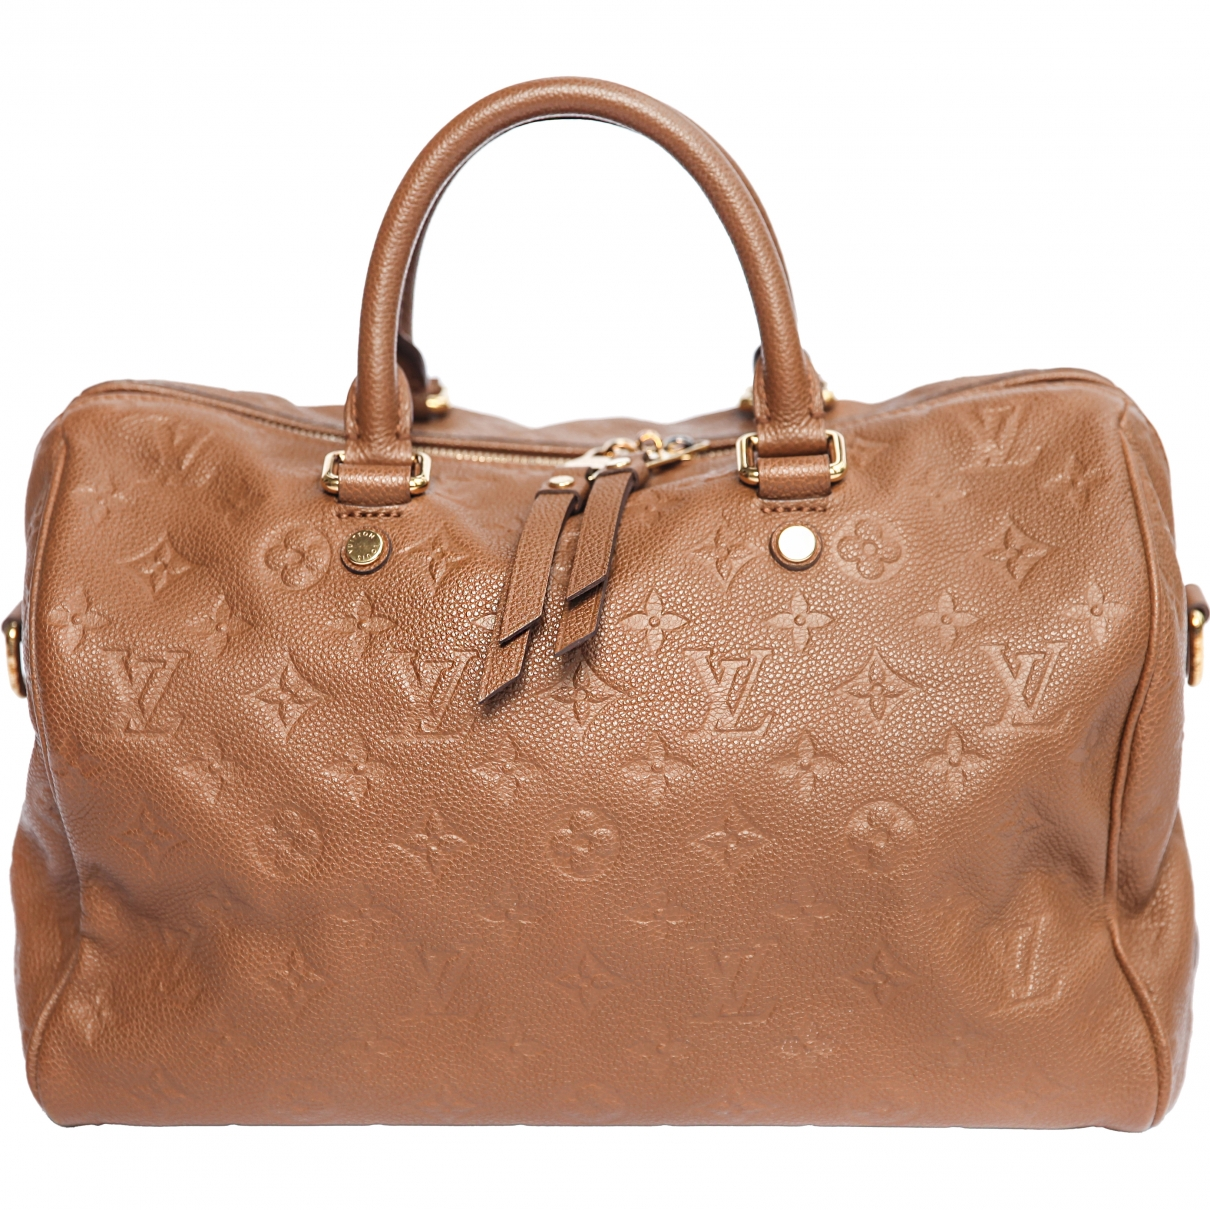 Louis Vuitton - Sac a main Speedy pour femme en cuir - marron